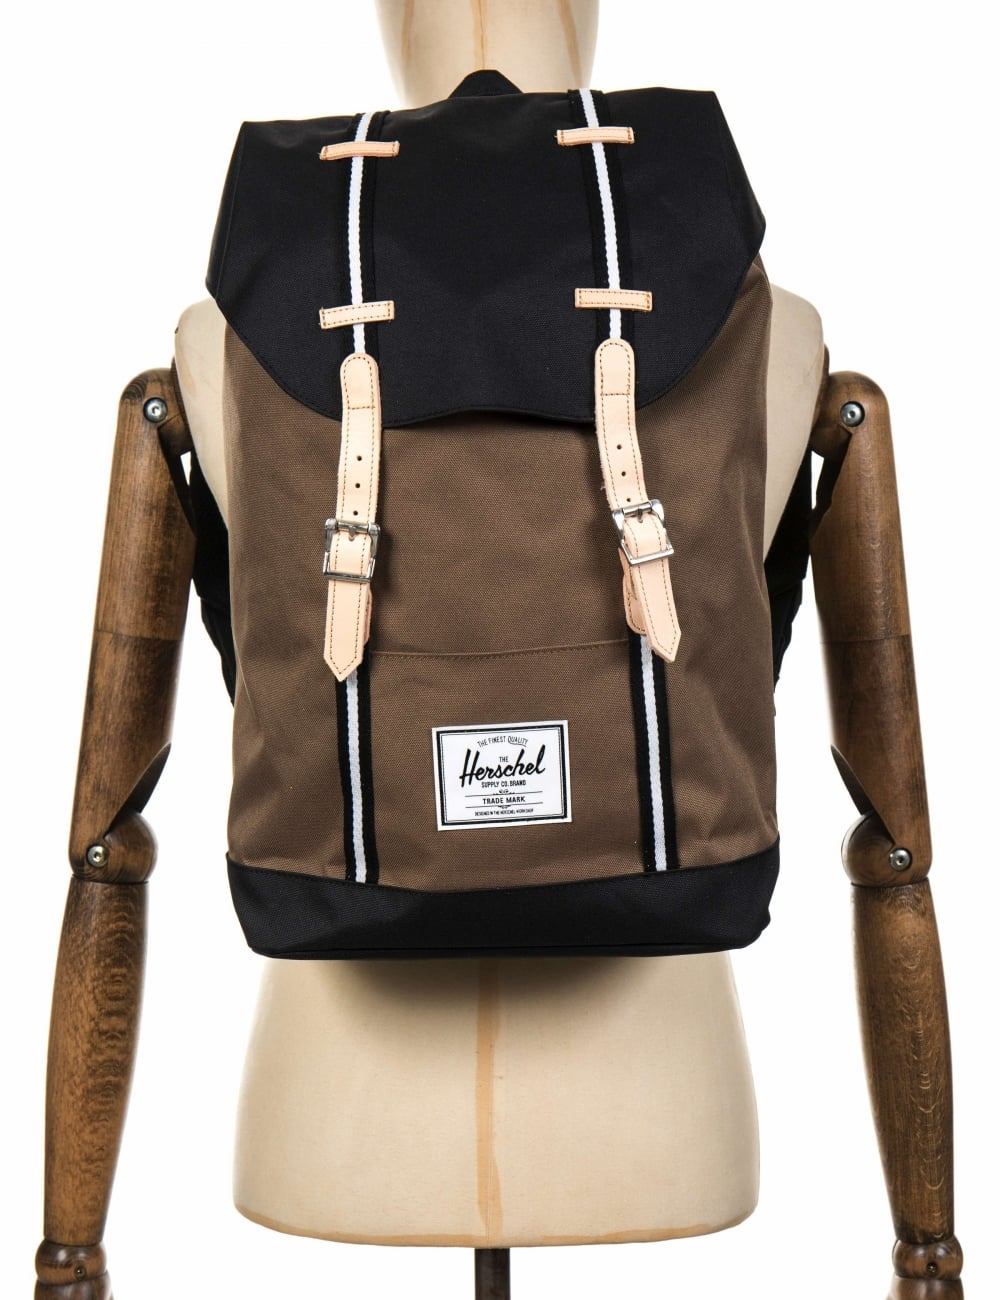 5337ff7ae4a0 Herschel Supply Co Retreat 19.5L Backpack - Cub Black White ...